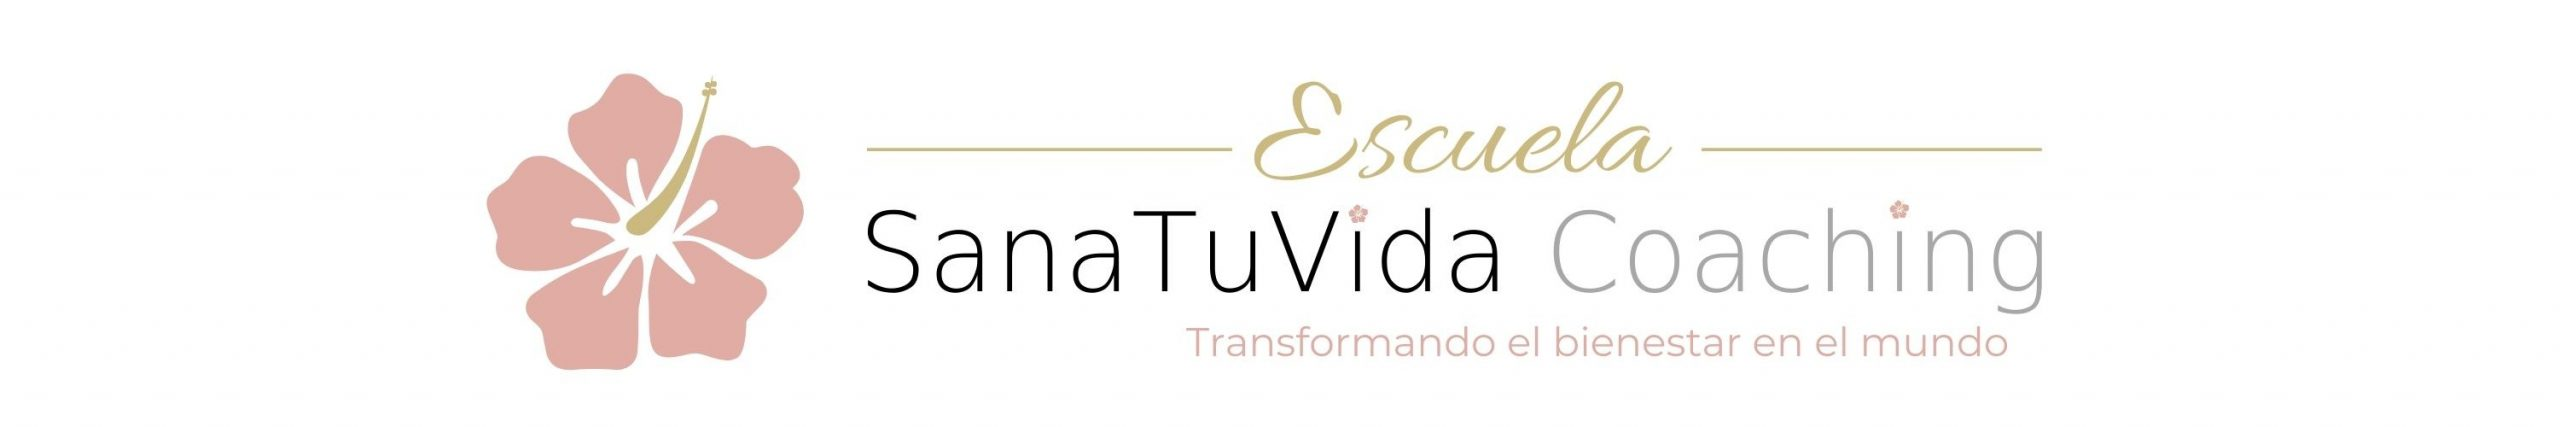 Escuela SanaTuVida Coaching